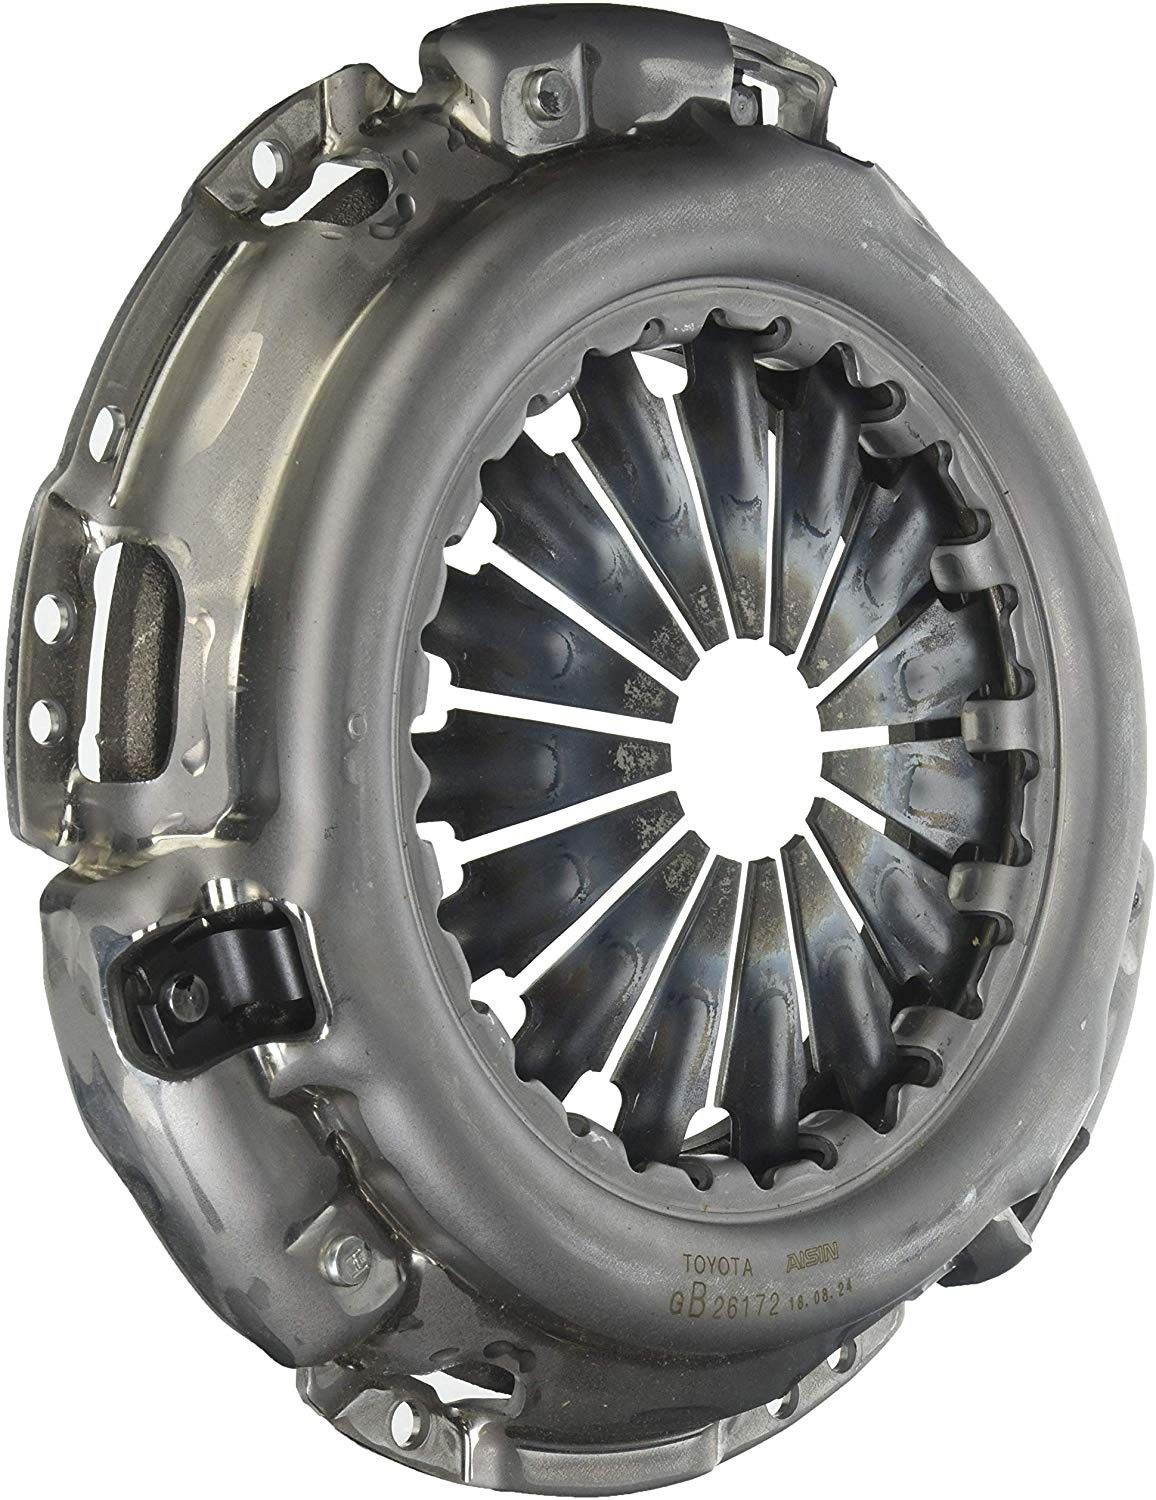 Luk Clutch Pressure Plate For Eicher Jumbo 11.1 310 - 1310297100